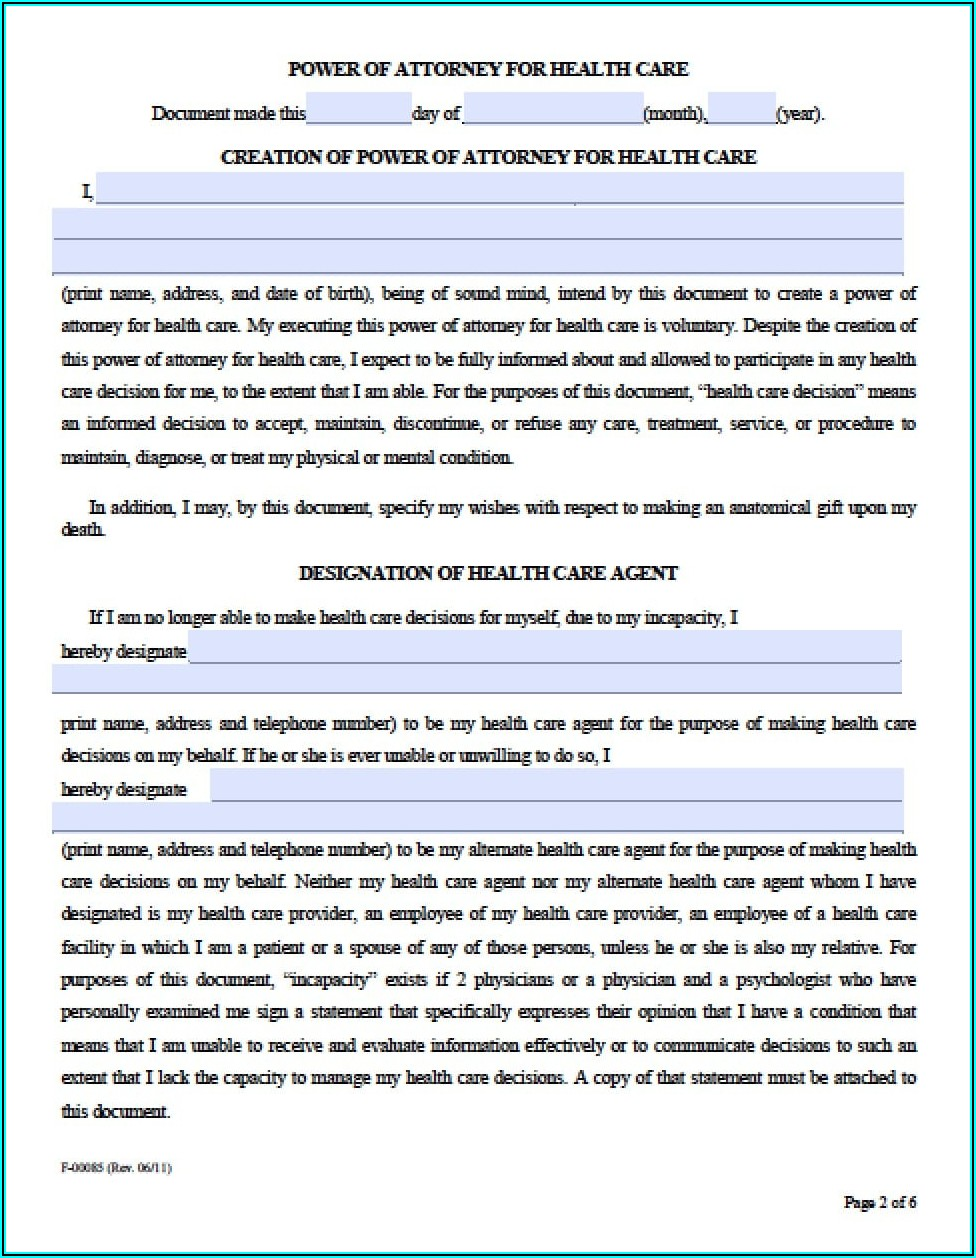 Where Can I Get A Medical Power Of Attorney Form